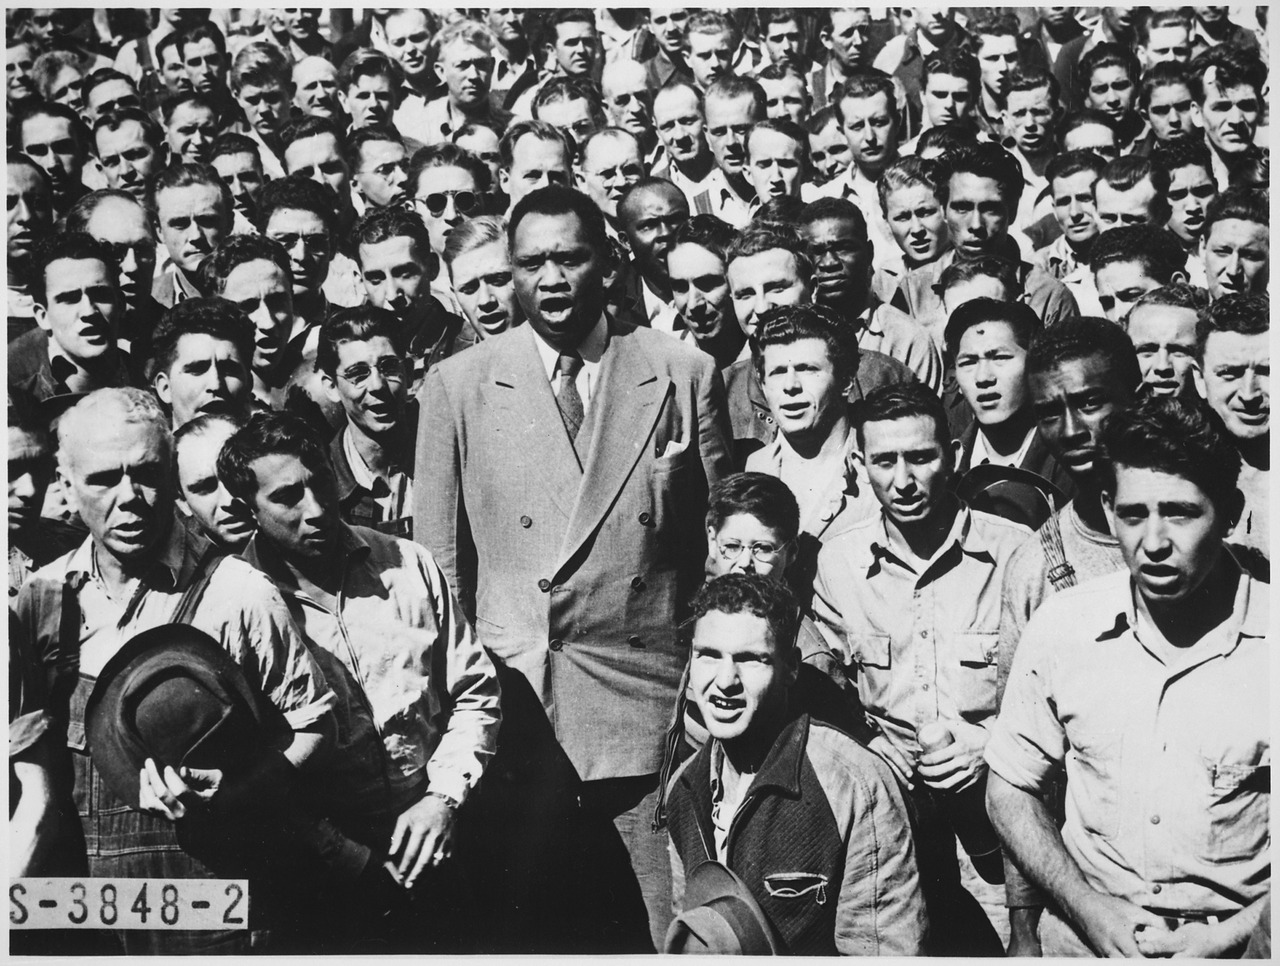 A Black man stands in the middle of a crowd, leading it in song